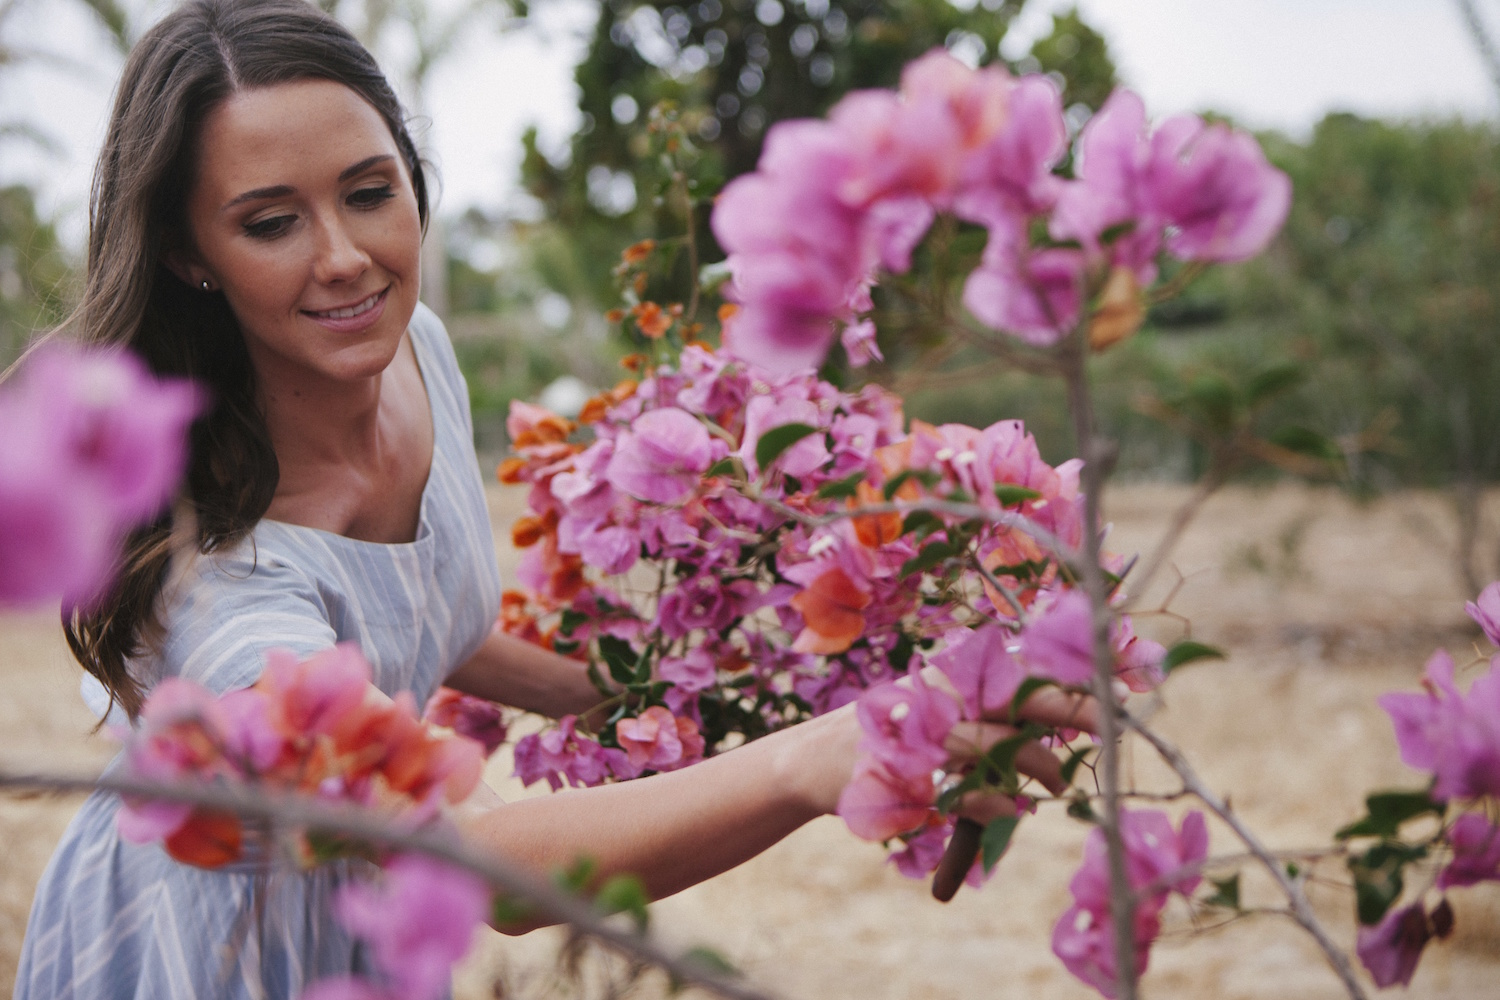 Taya Glynn lead designer & owner of Compass Floral. Photography by Ashley Williams.